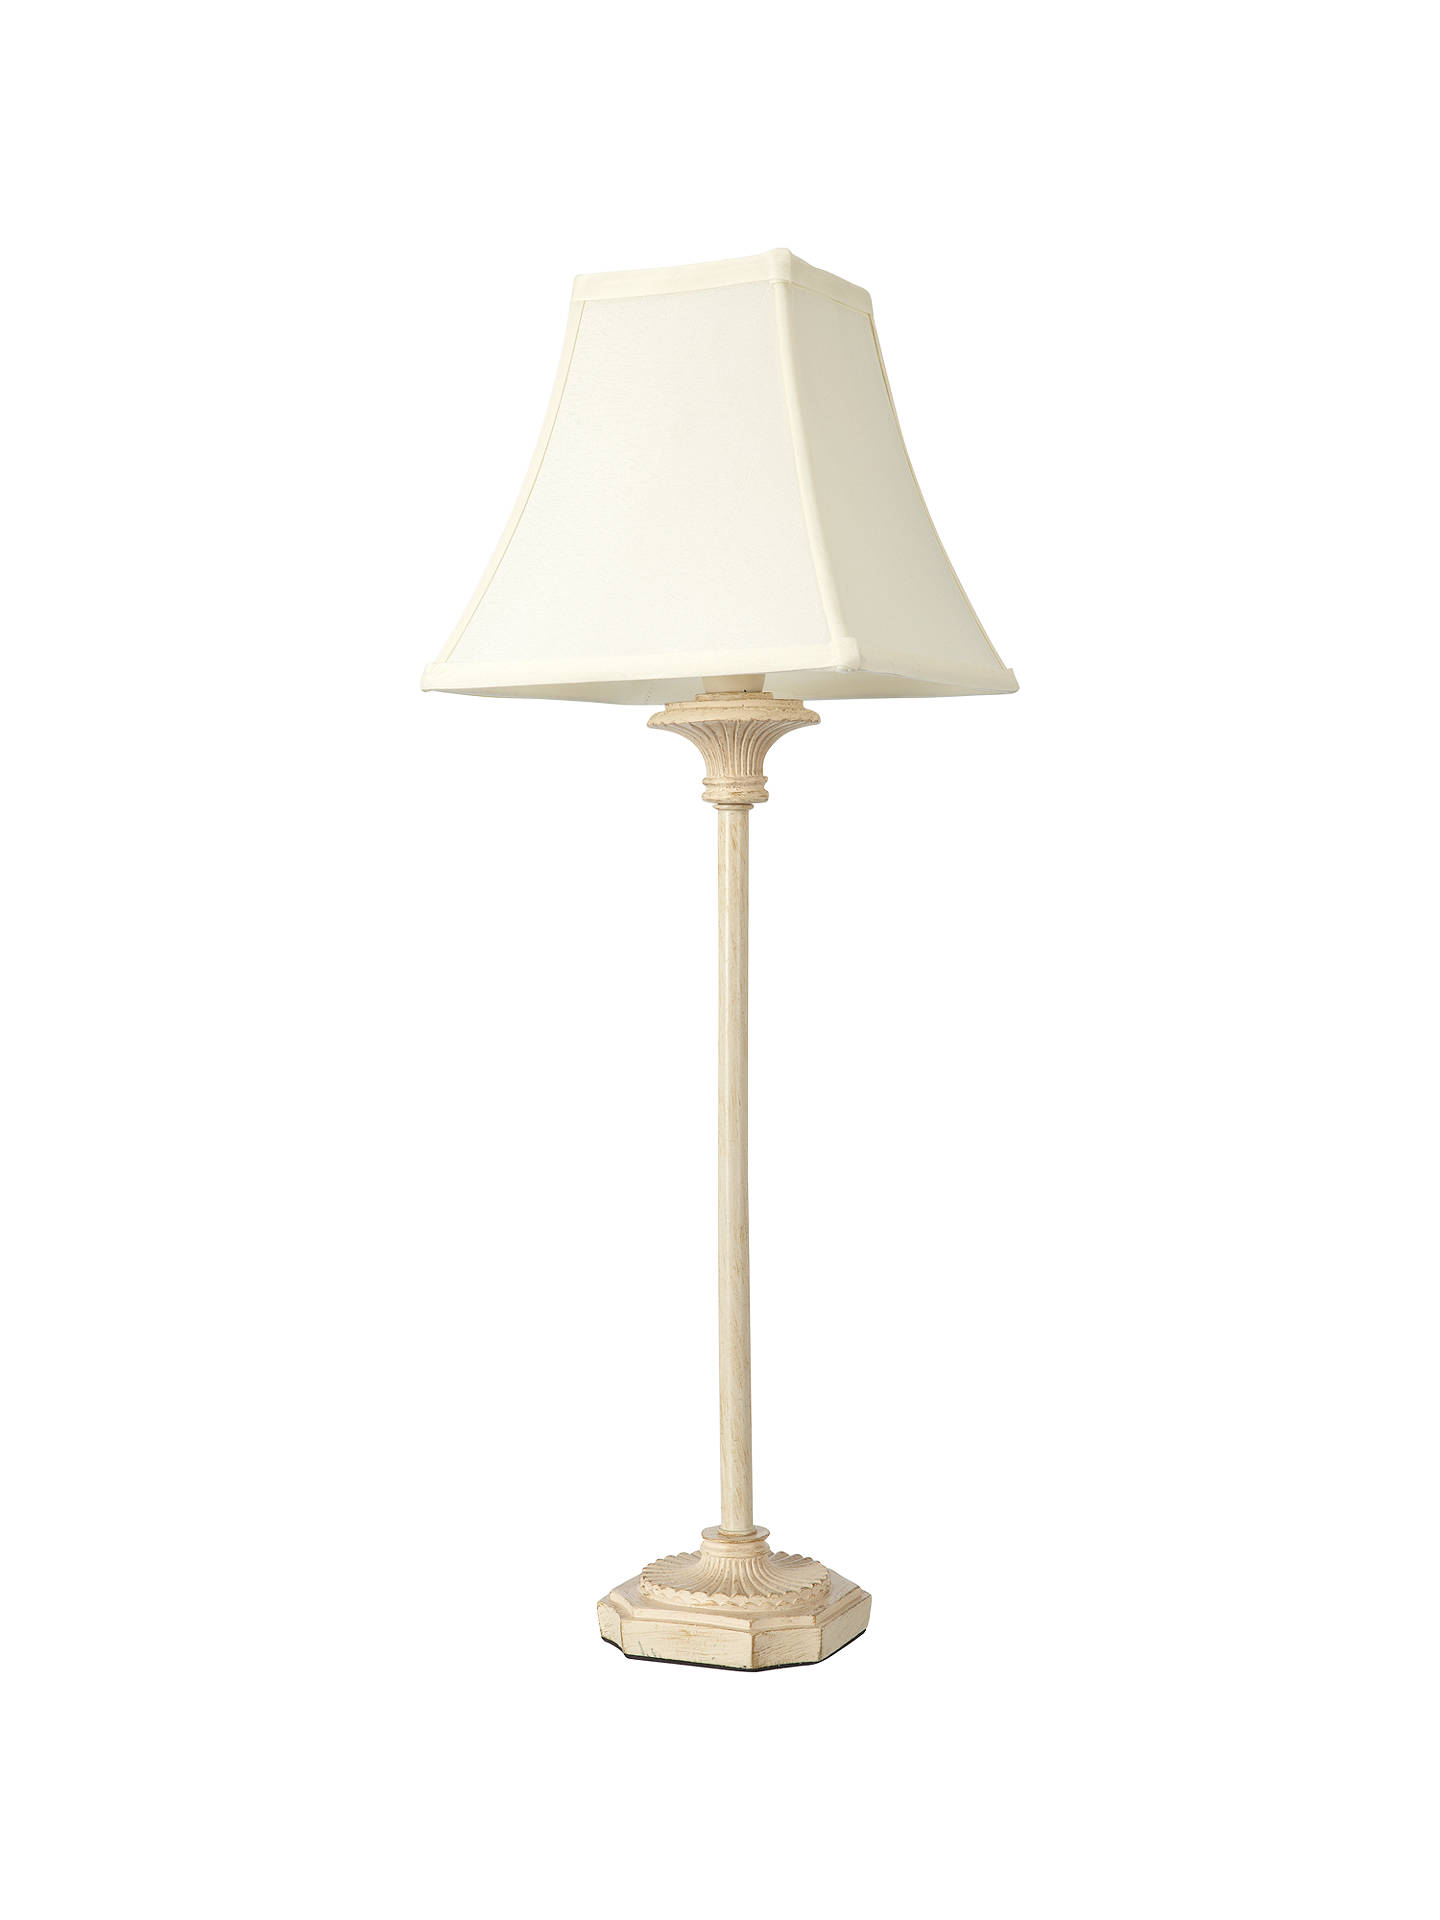 Buy John Lewis Eve Table Lamp Online at johnlewis.com